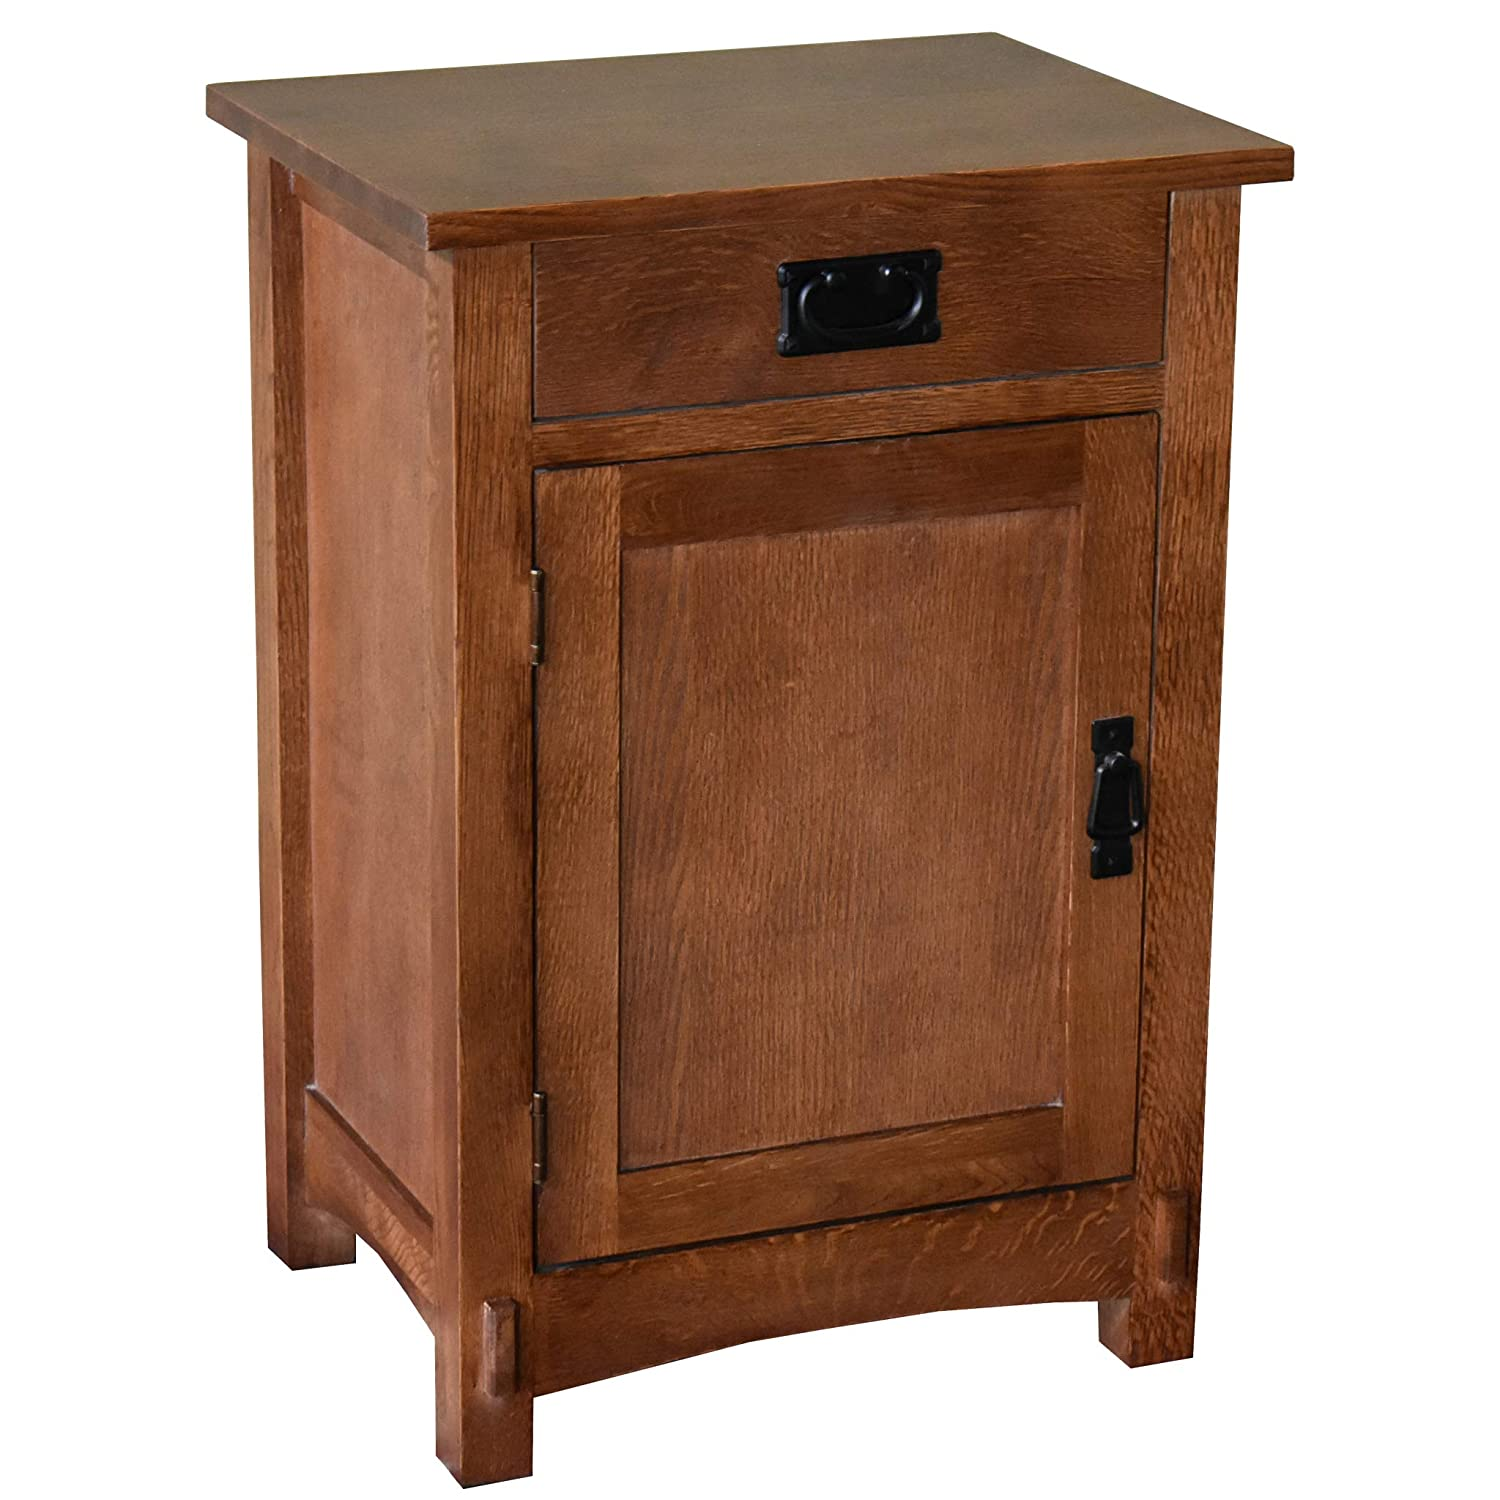 Prime Crafters And Weavers Arts And Crafts Mission Oak Nightstand End Table Bedside Table Creativecarmelina Interior Chair Design Creativecarmelinacom